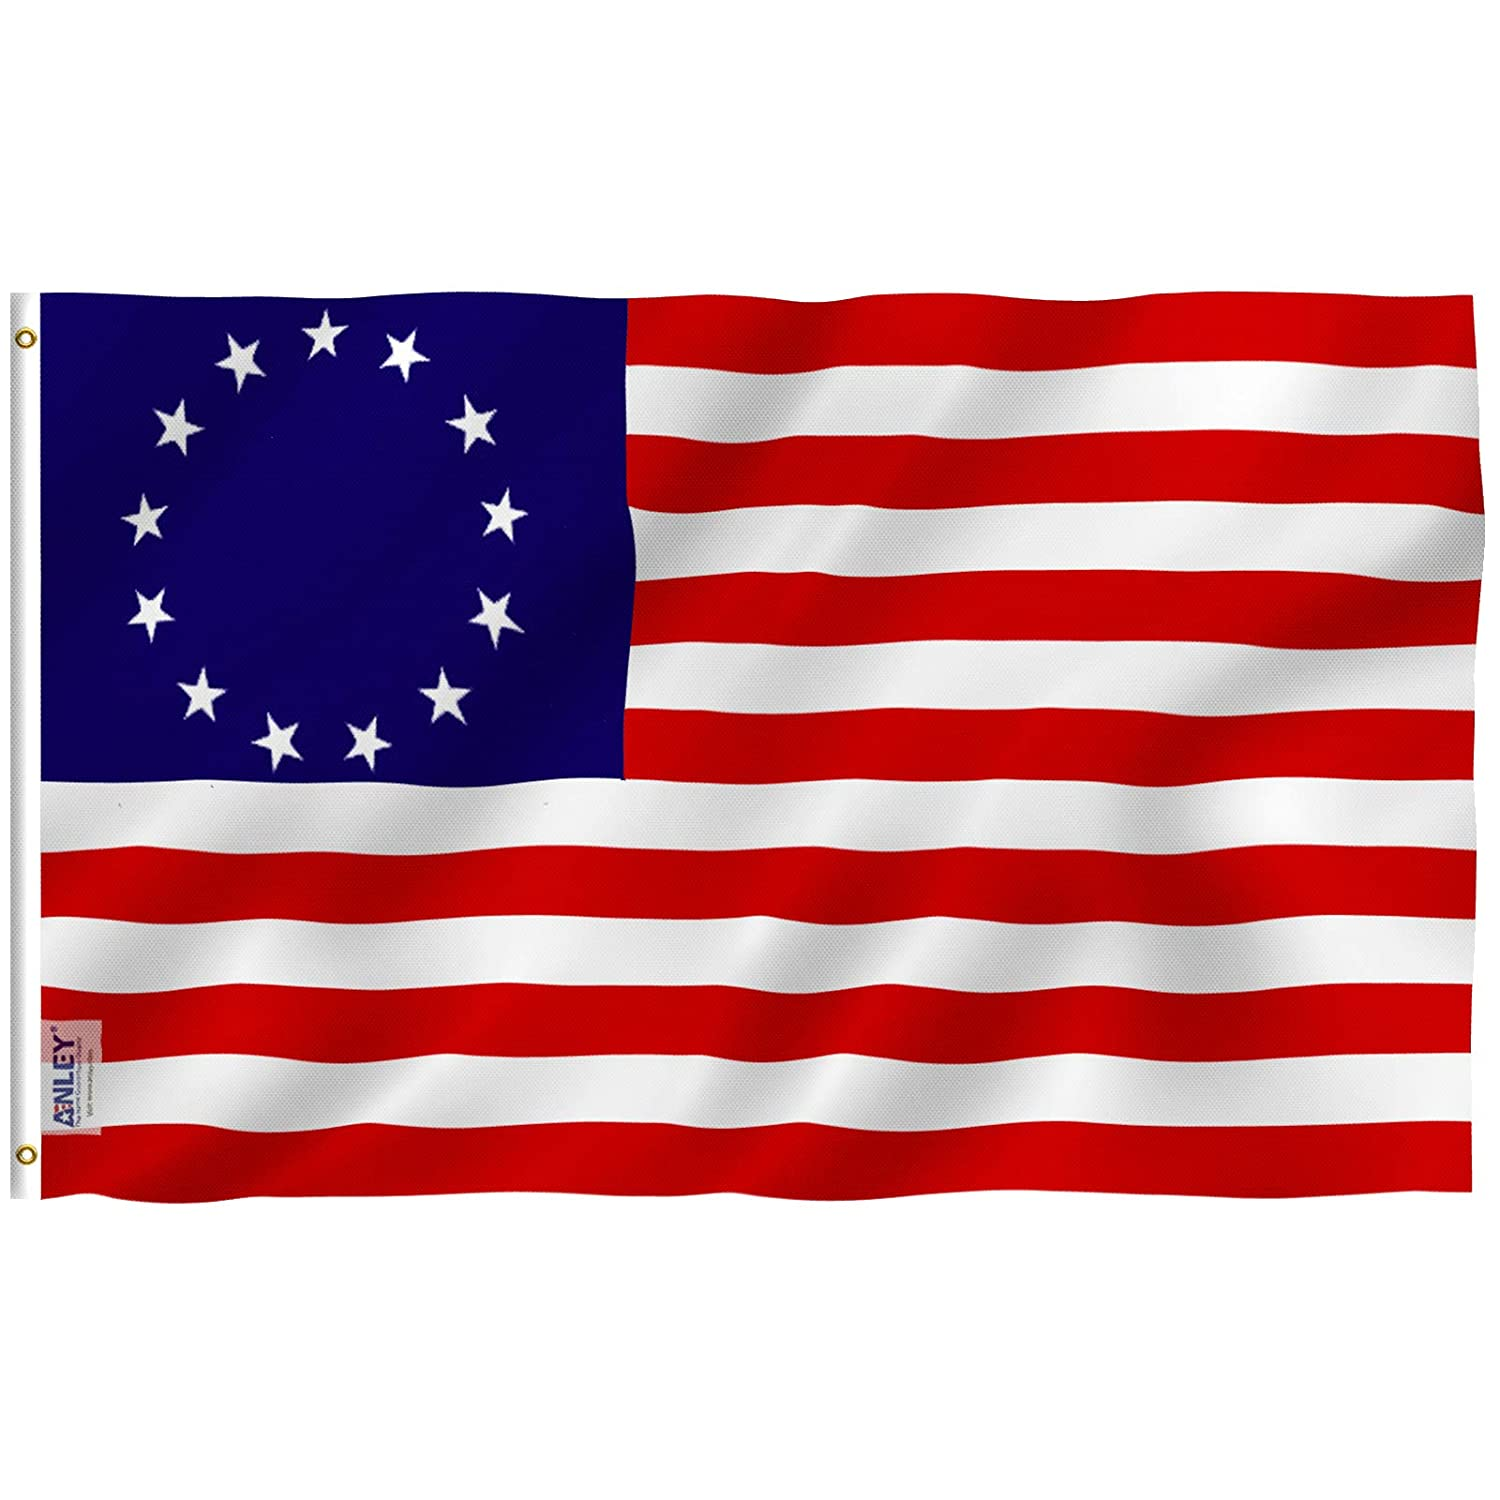 photo regarding Betsy Ross Printable Pictures named Anley Fly Breeze 3x5 Foot Betsy Ross Flag - Brilliant Colour and UV Fade Resistant - Canvas Header and Double Sched - United Suggests Flags Polyester with